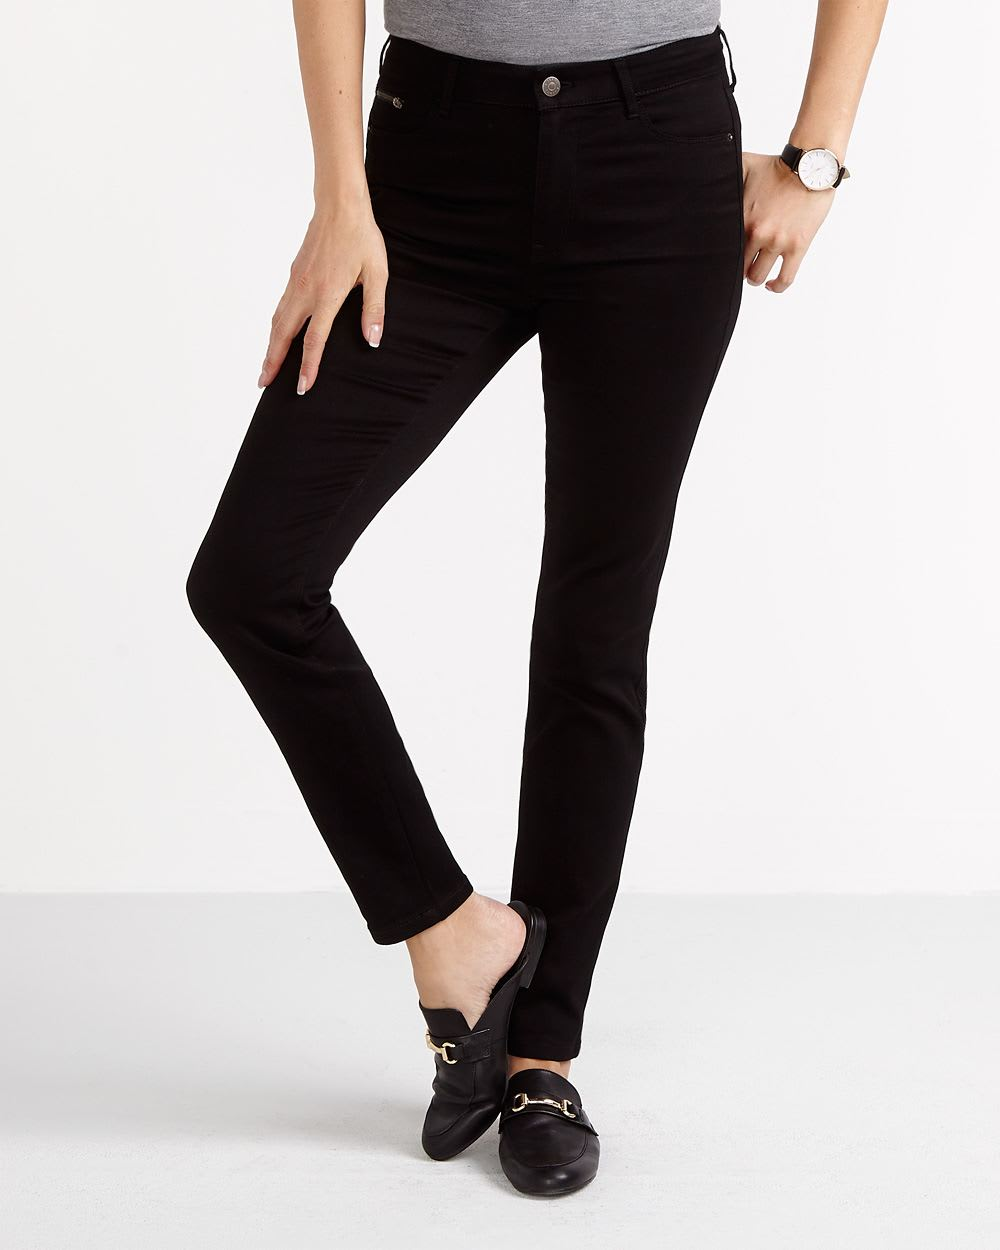 bbab6acb1e High Rise Skinny Jeans. (18). read 18 reviews